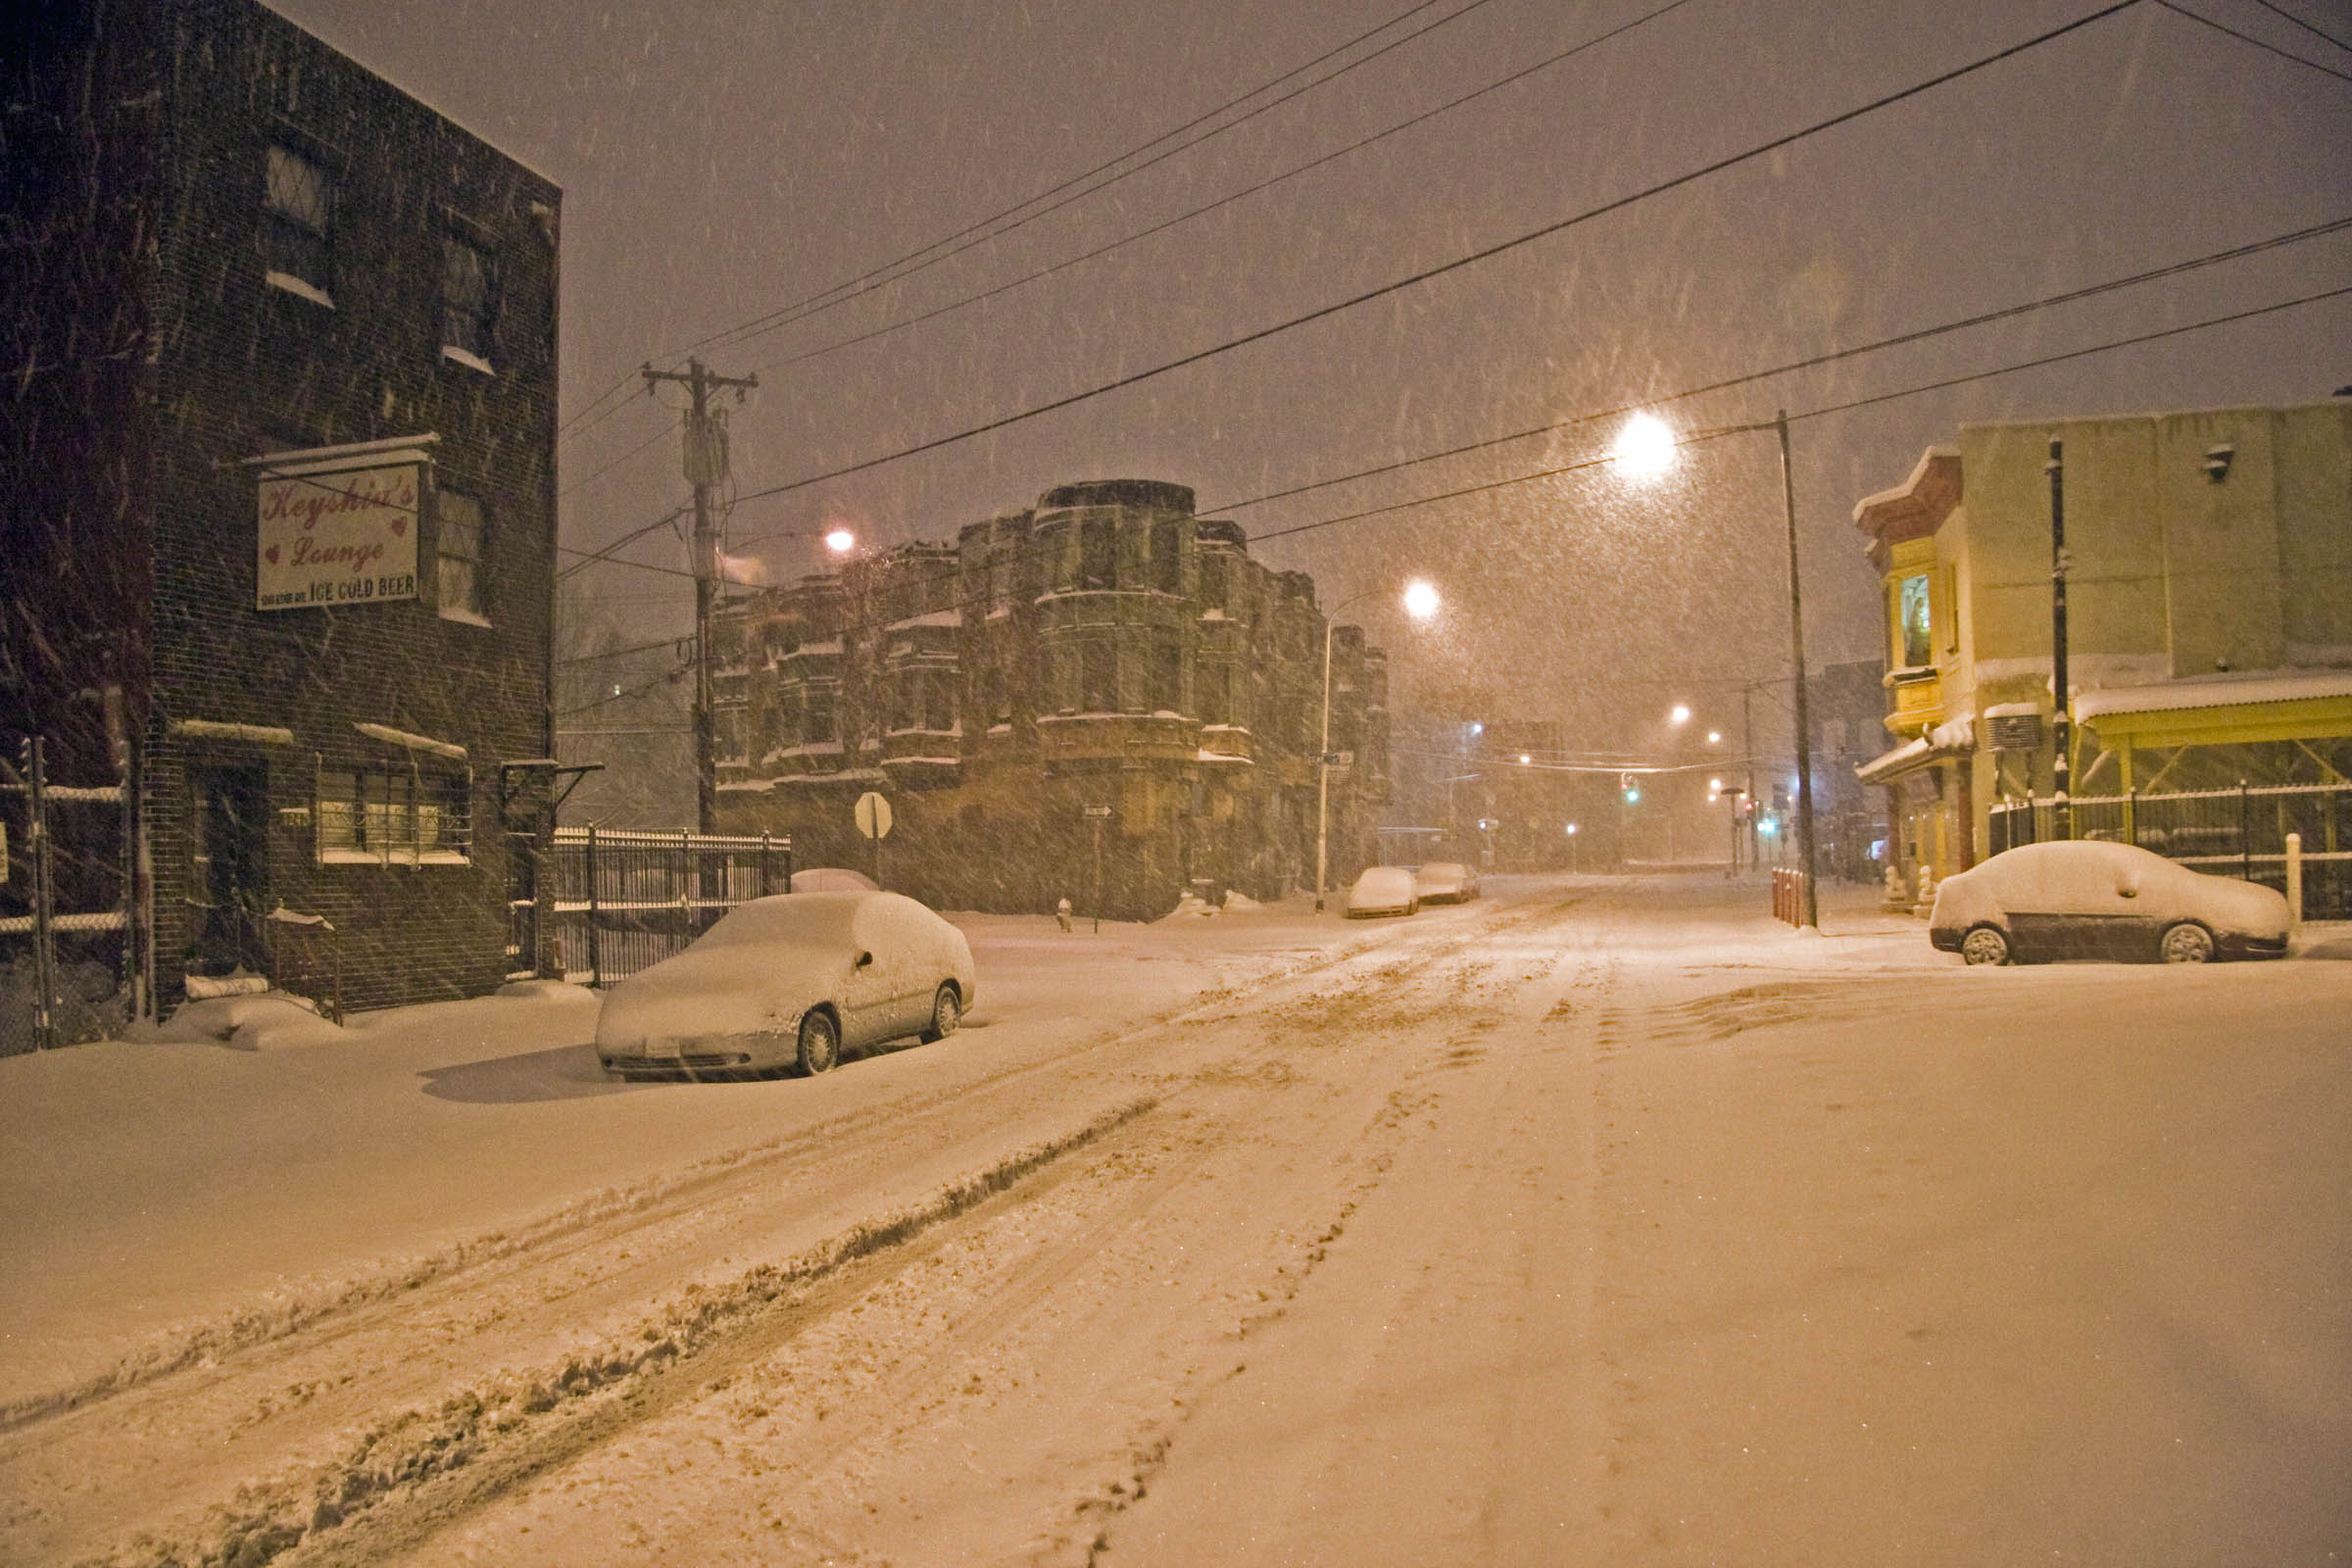 Night shot of snow falling on Ridge Avenue, Philadelphia, PA, 2010.